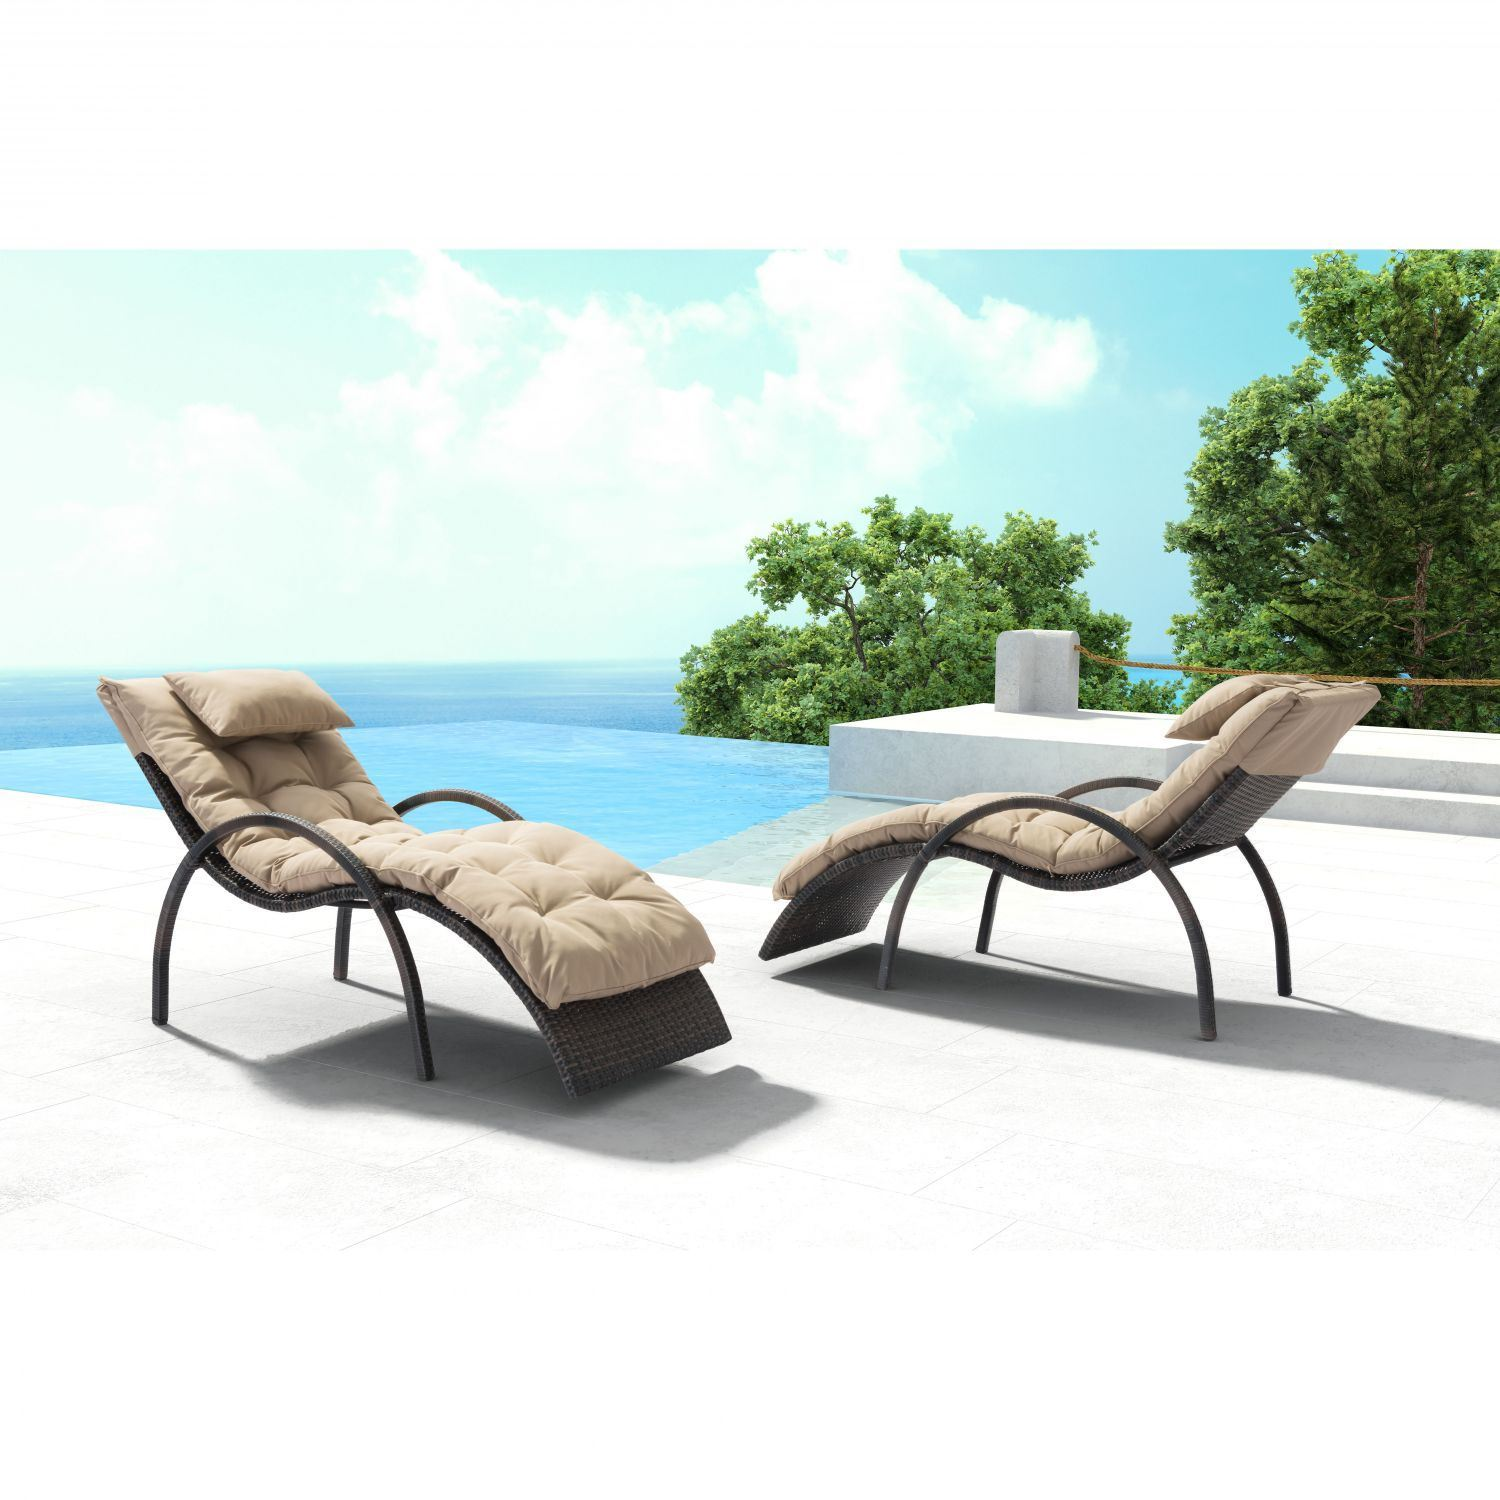 Eggertz beach chaise lounge brown beige 703841 zuo for Beach chaise lounger